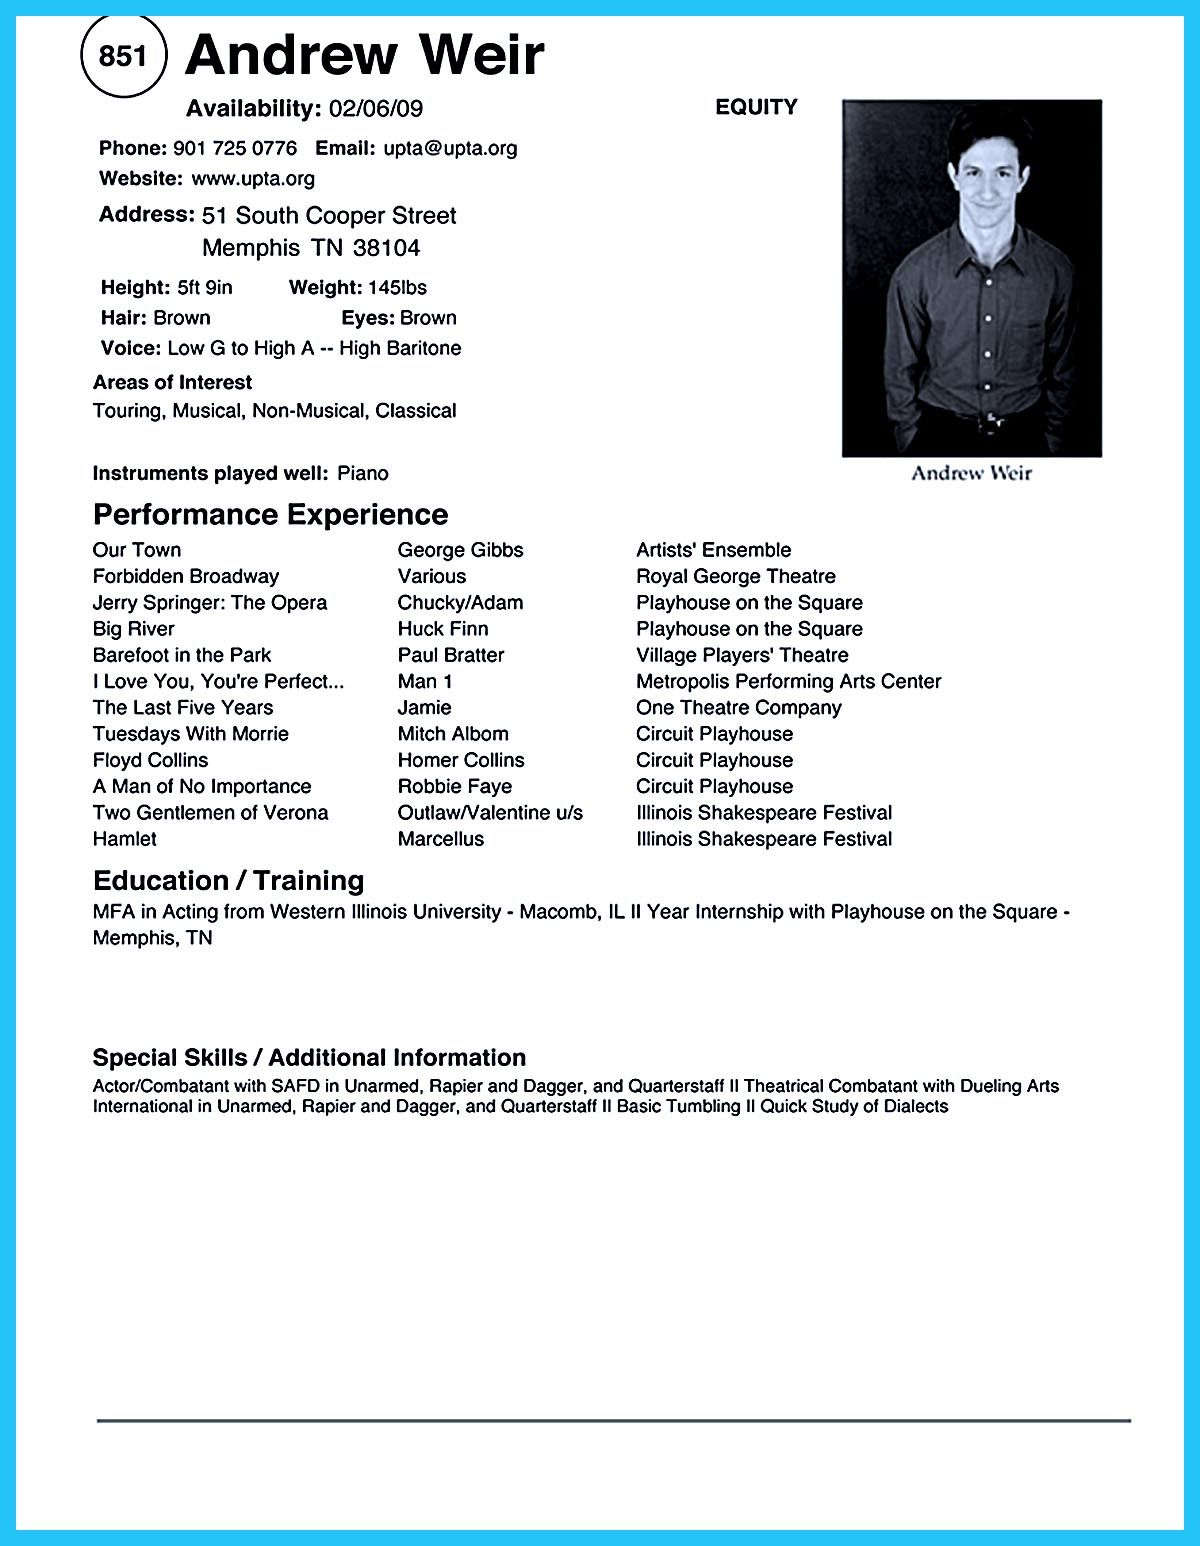 acting resume sample presents your skills and strengths in details the acting resume objective summary education including your skills abilities a - Strengths To Be Mentioned In Resume